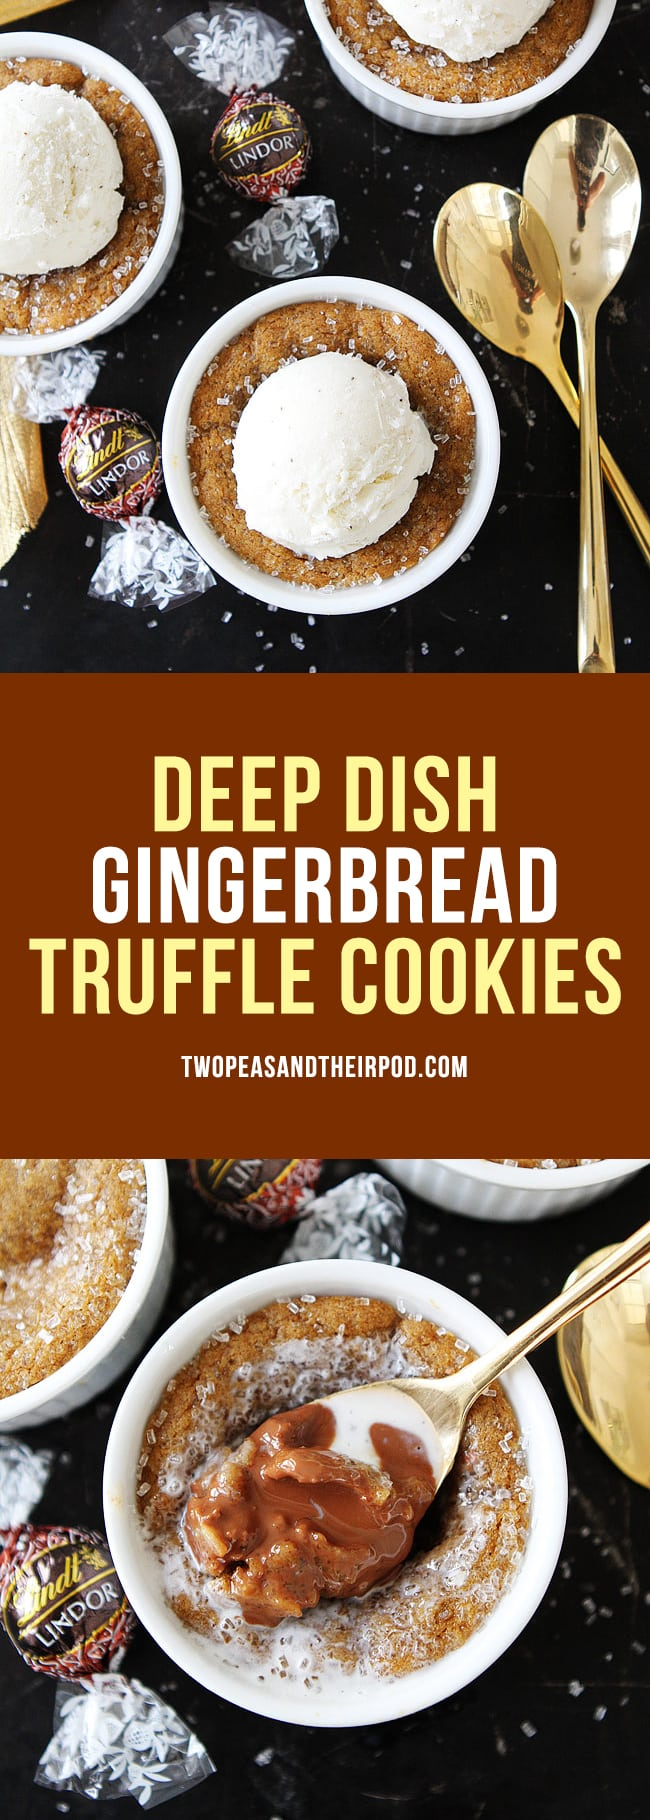 Deep Dish Gingerbread Truffle Cookies are the perfect holiday dessert! #christmas #holidays #gingerbread #truffles #cookies #dessert